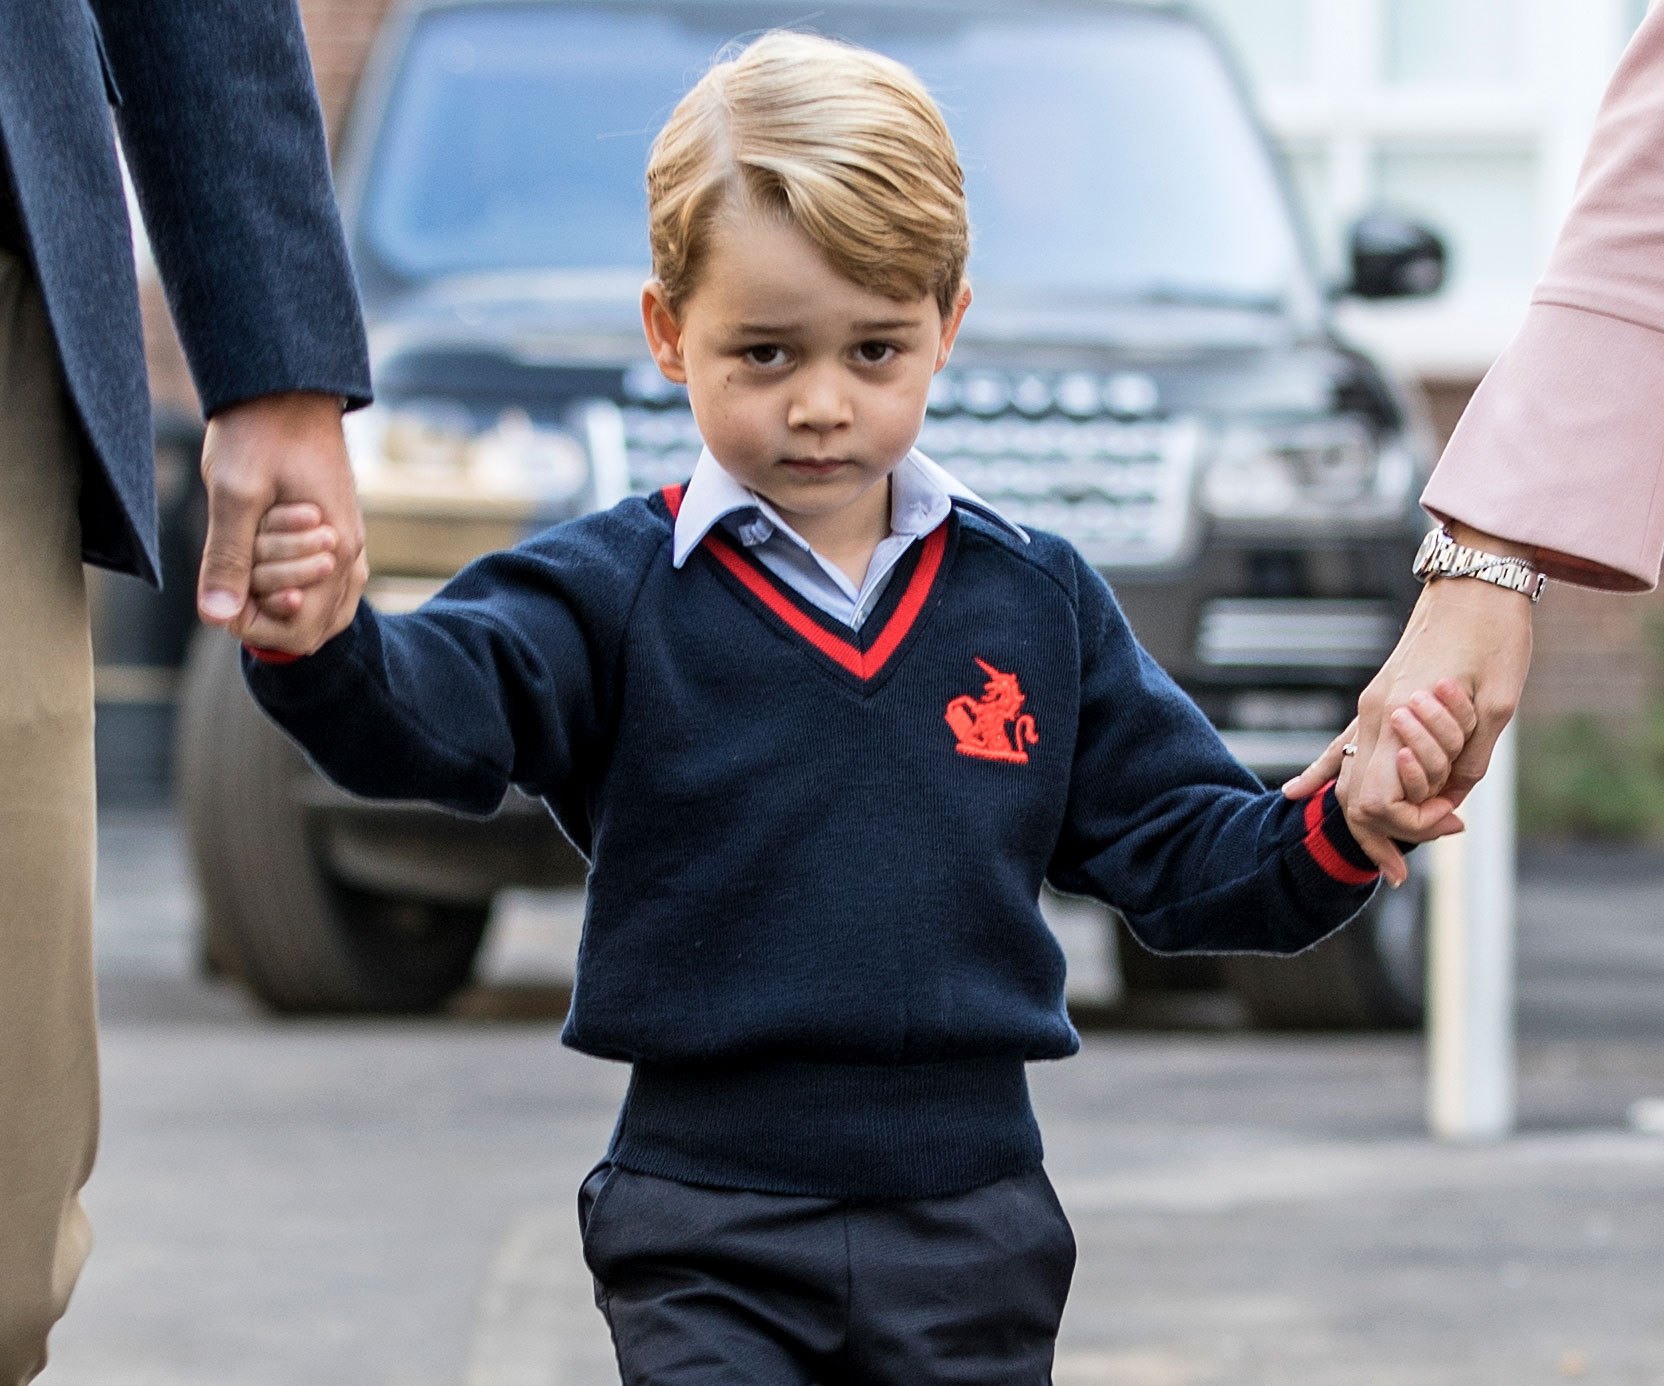 All Prince George Wants For Christmas Is A Police Car, Dad Says